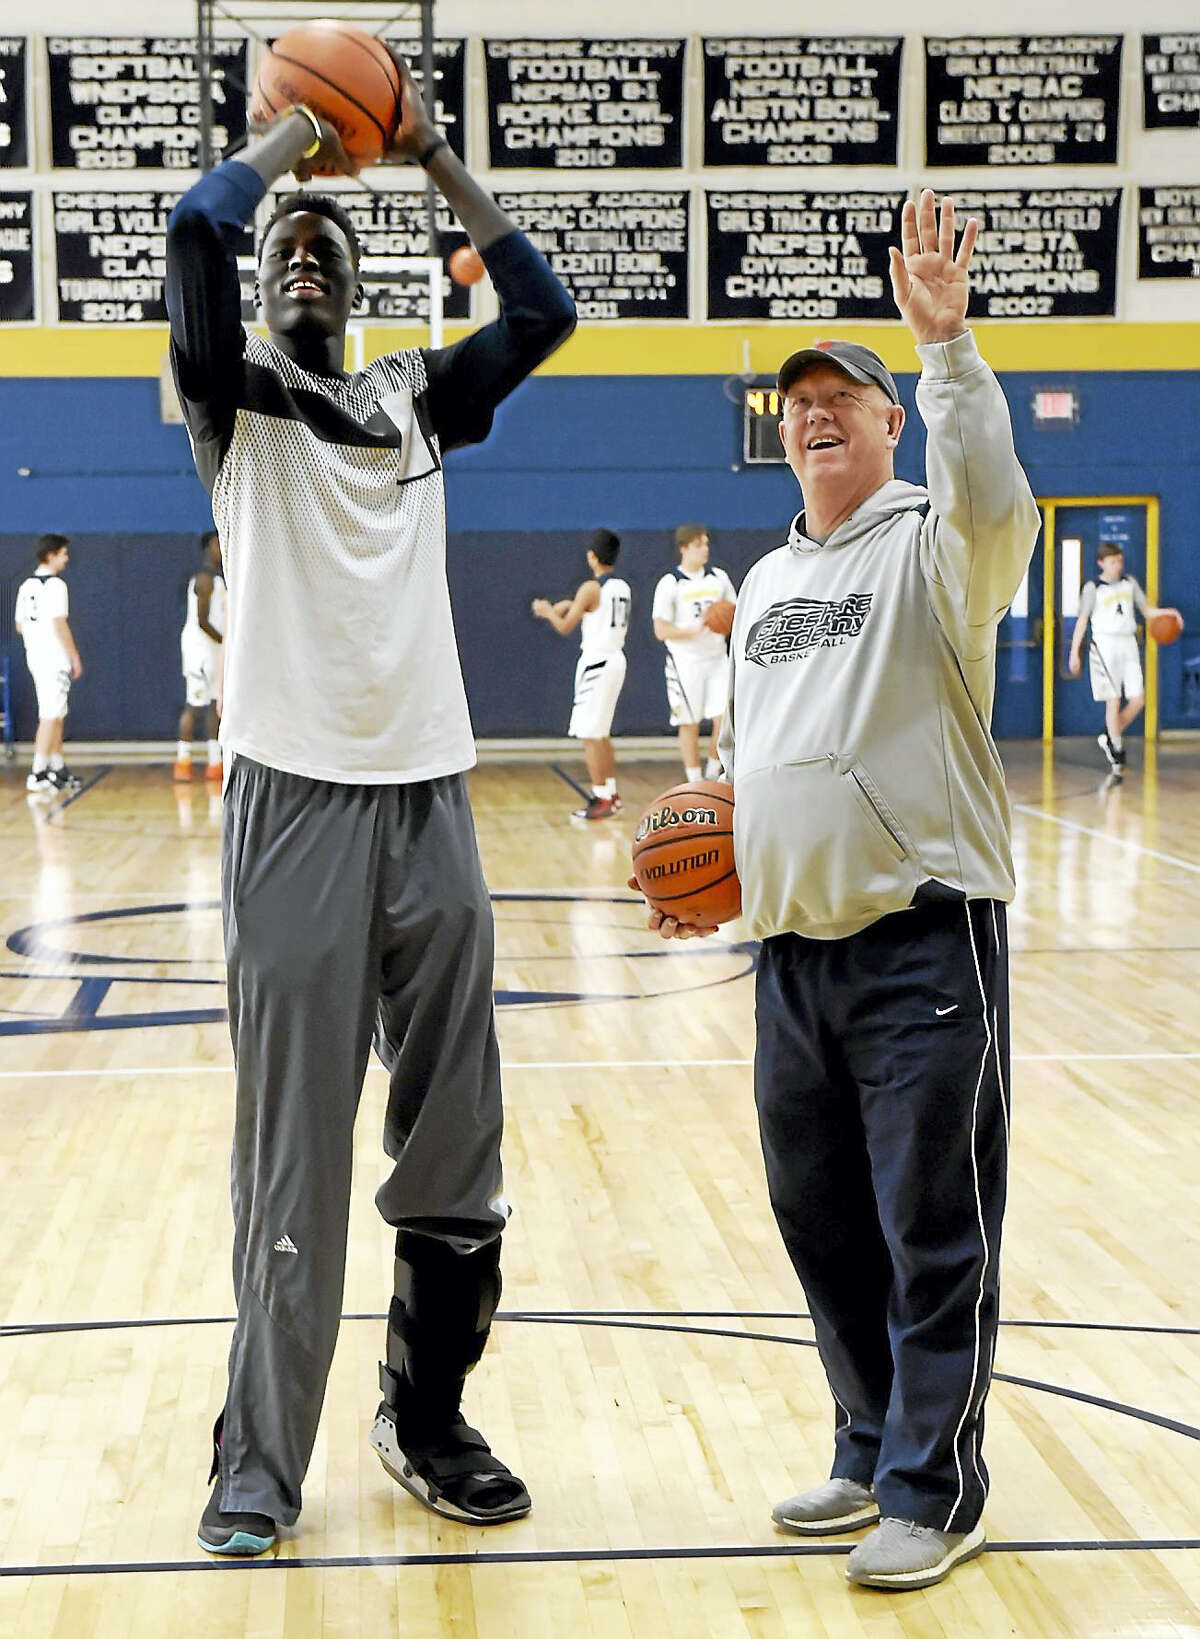 Chol Marial, left, receives instruction from Cheshire Academy coach Kevin Kehoe.